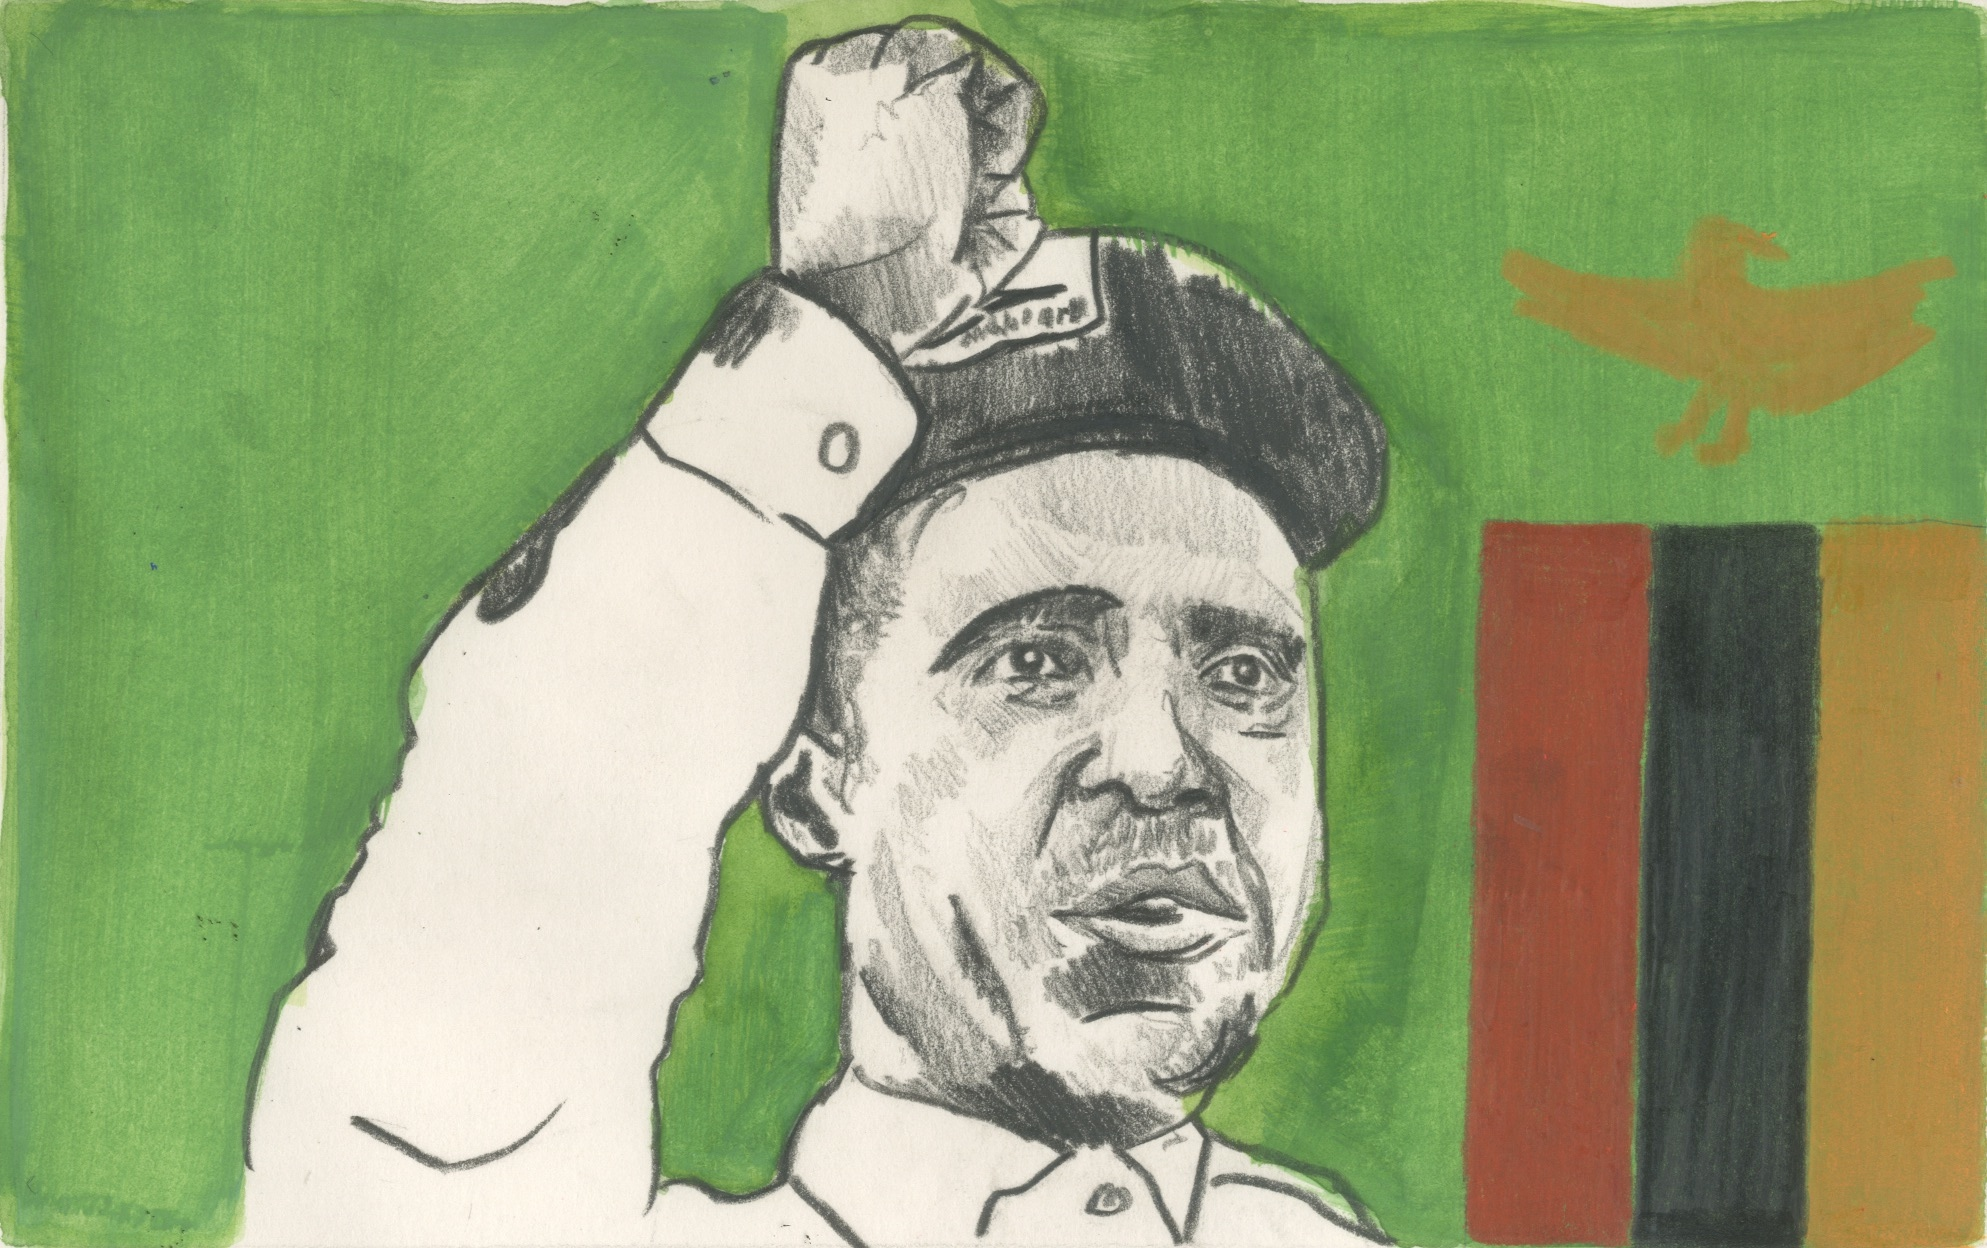 24/01/15 Edgar Lungu is the new president of Zambia. He was previously justice and defence Minister, as well as being secretary general of his party, the Patriotic Front